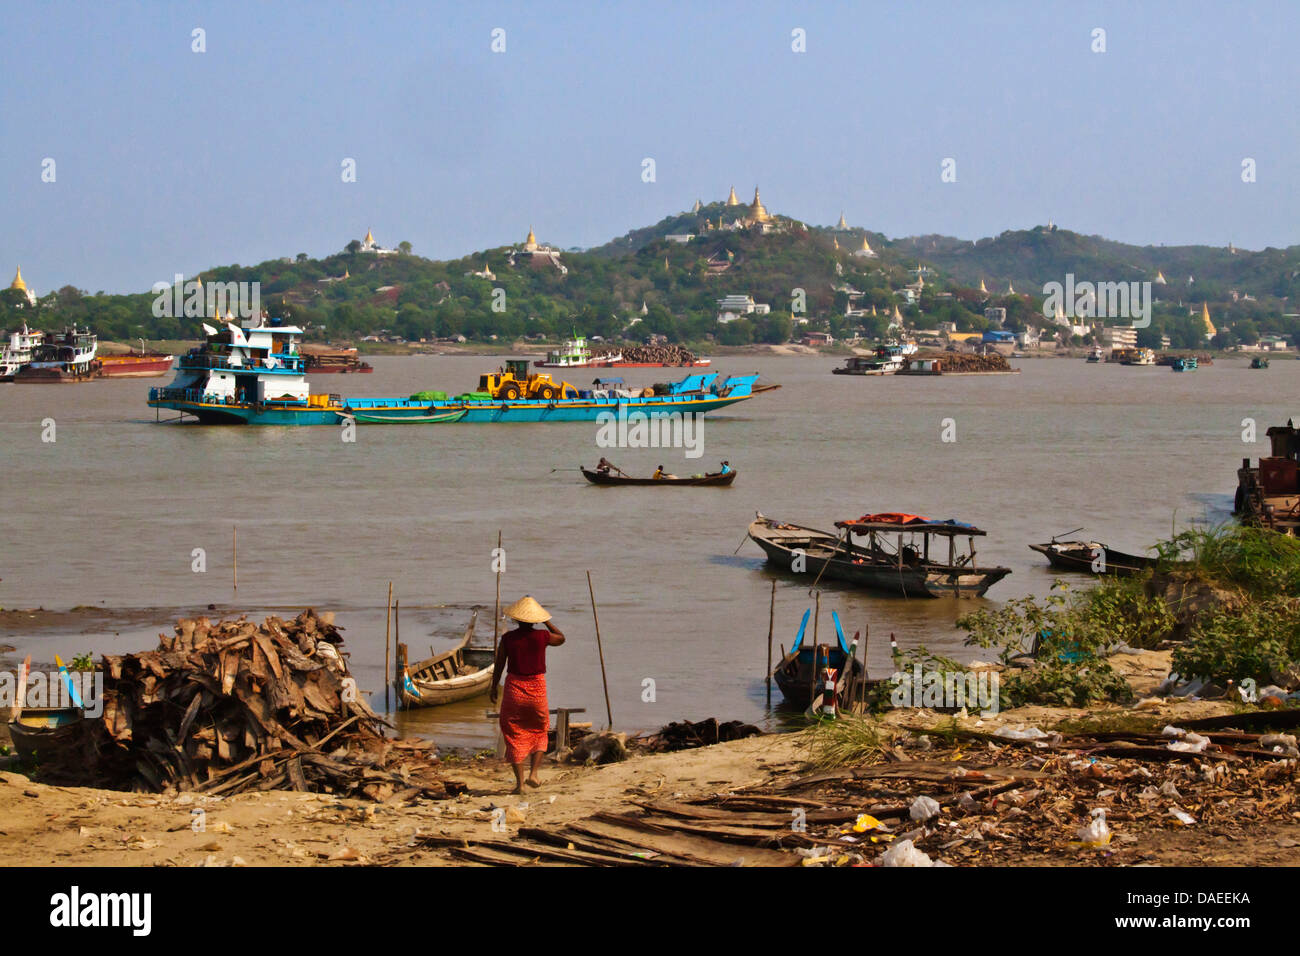 boat traffic on the Irrawaddy River with Sagaing hill behind, Burma, Mandalay - Stock Image